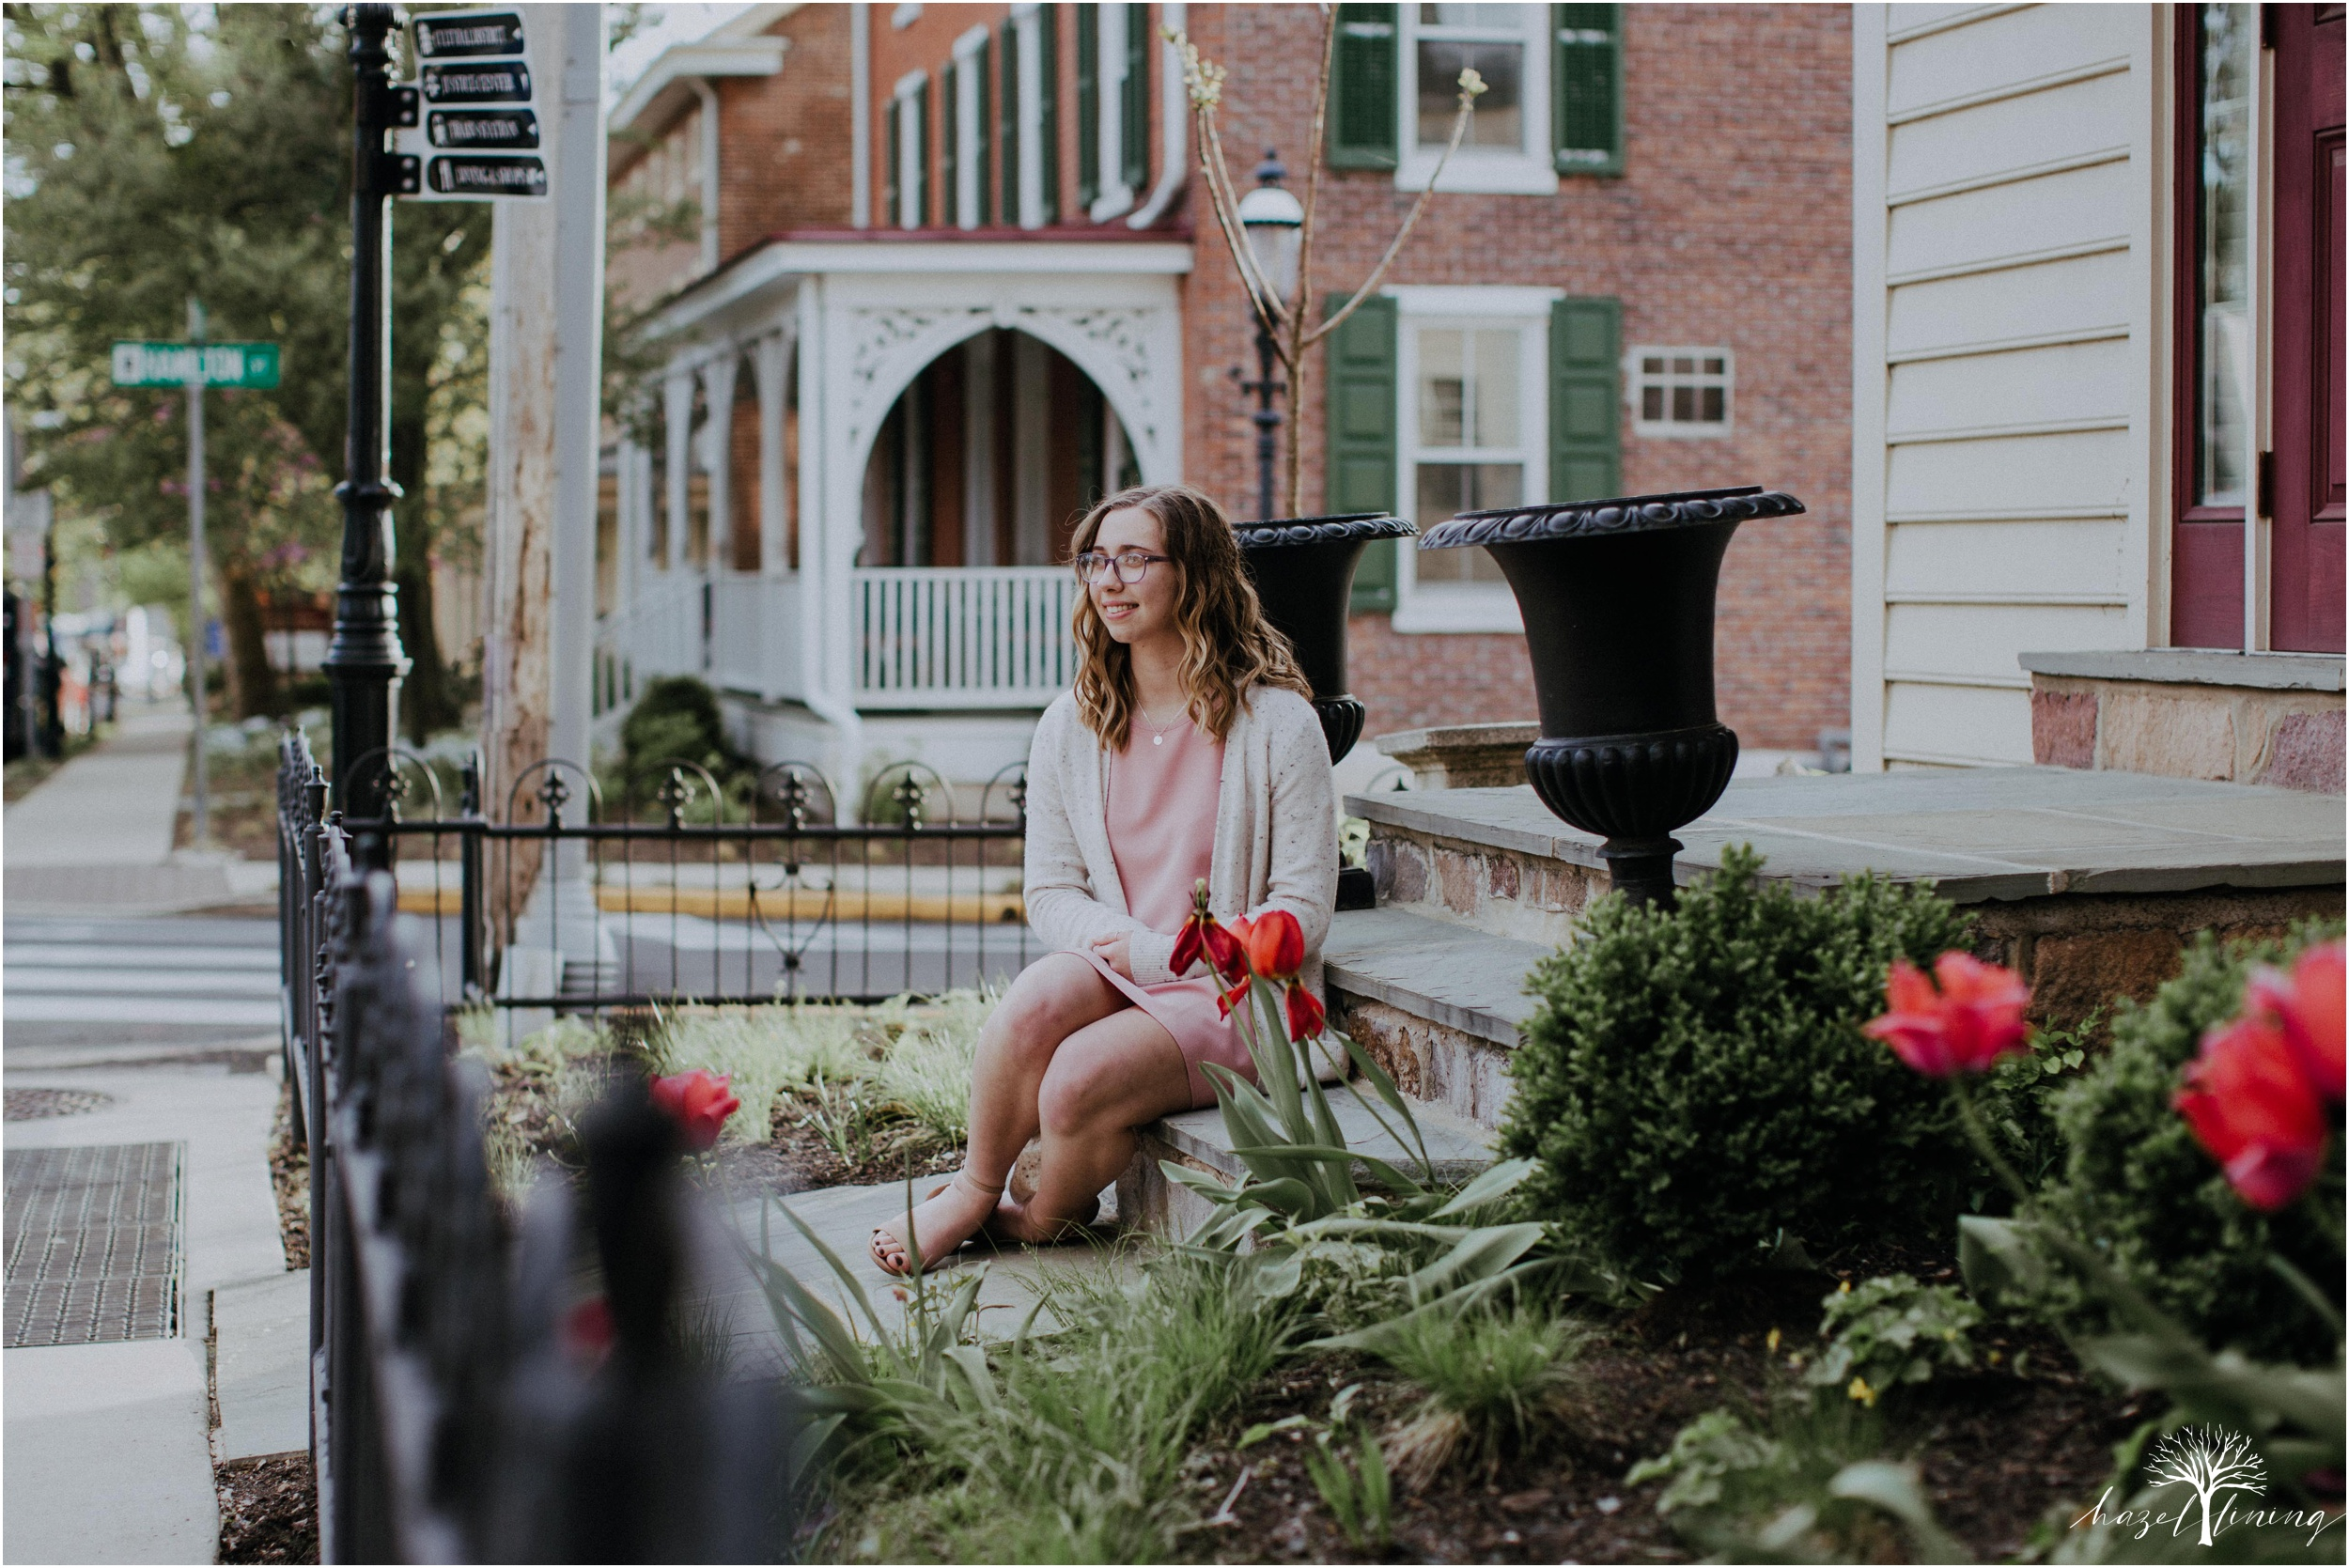 maddie-kiser-senior-portrait-session-doylestown-pennsylvania-spring-hazel-lining-photography-destination-elopement-wedding-engagement-photography-year-in-review_0003.jpg